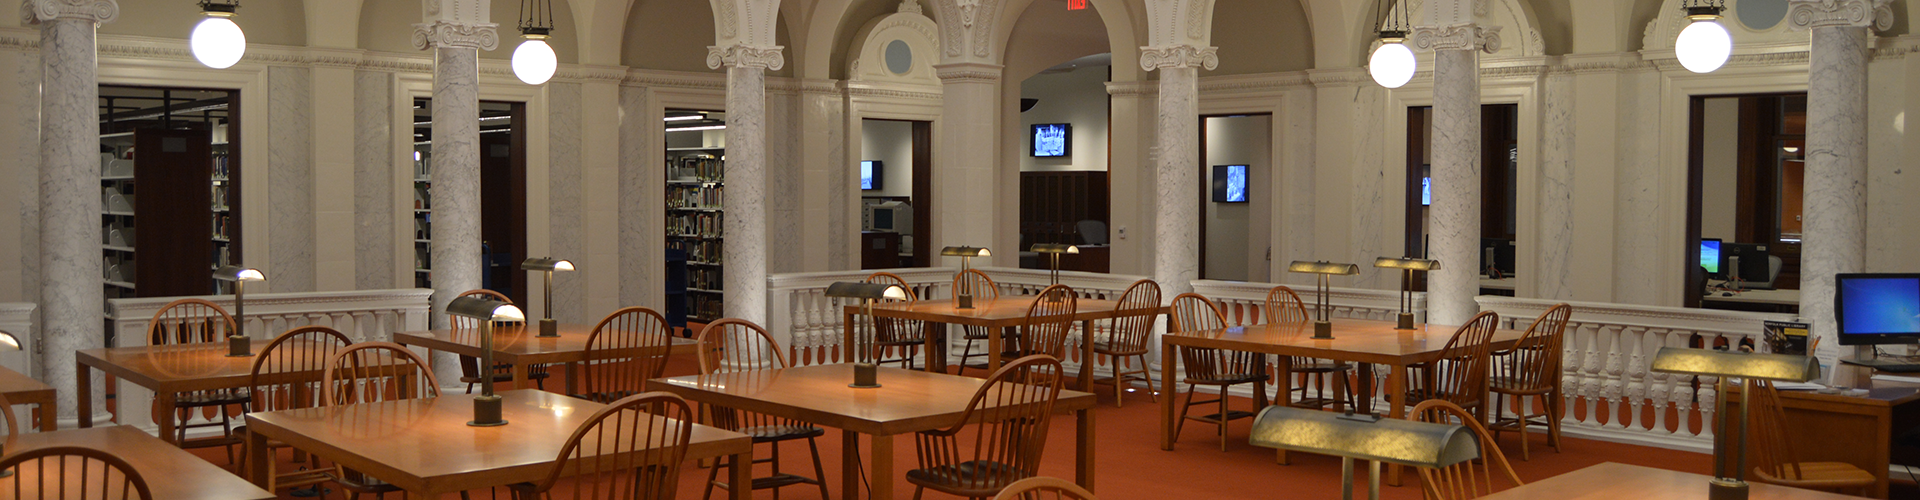 reading area in SMC, tables and columns in background